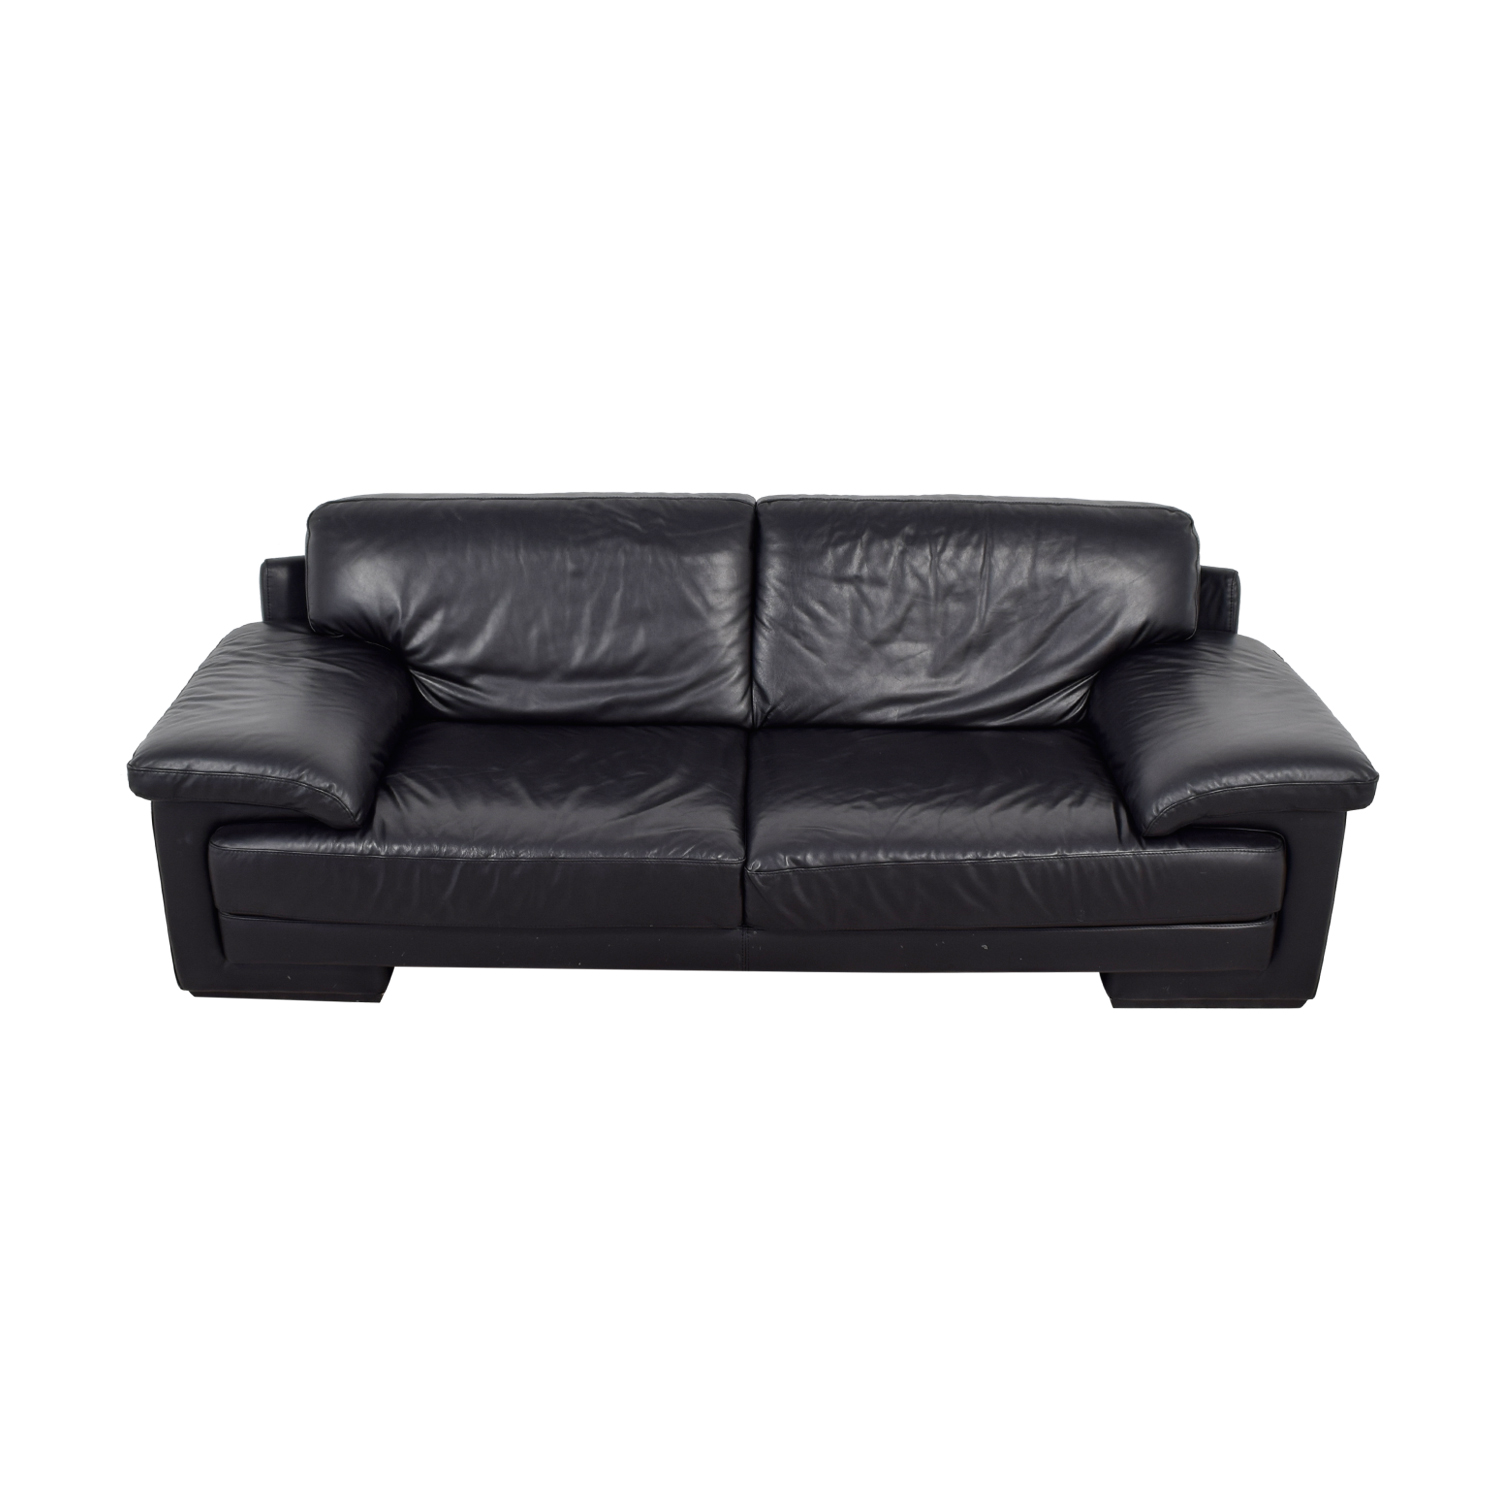 Natuzzi Black Leather Two-Cushion Couch sale